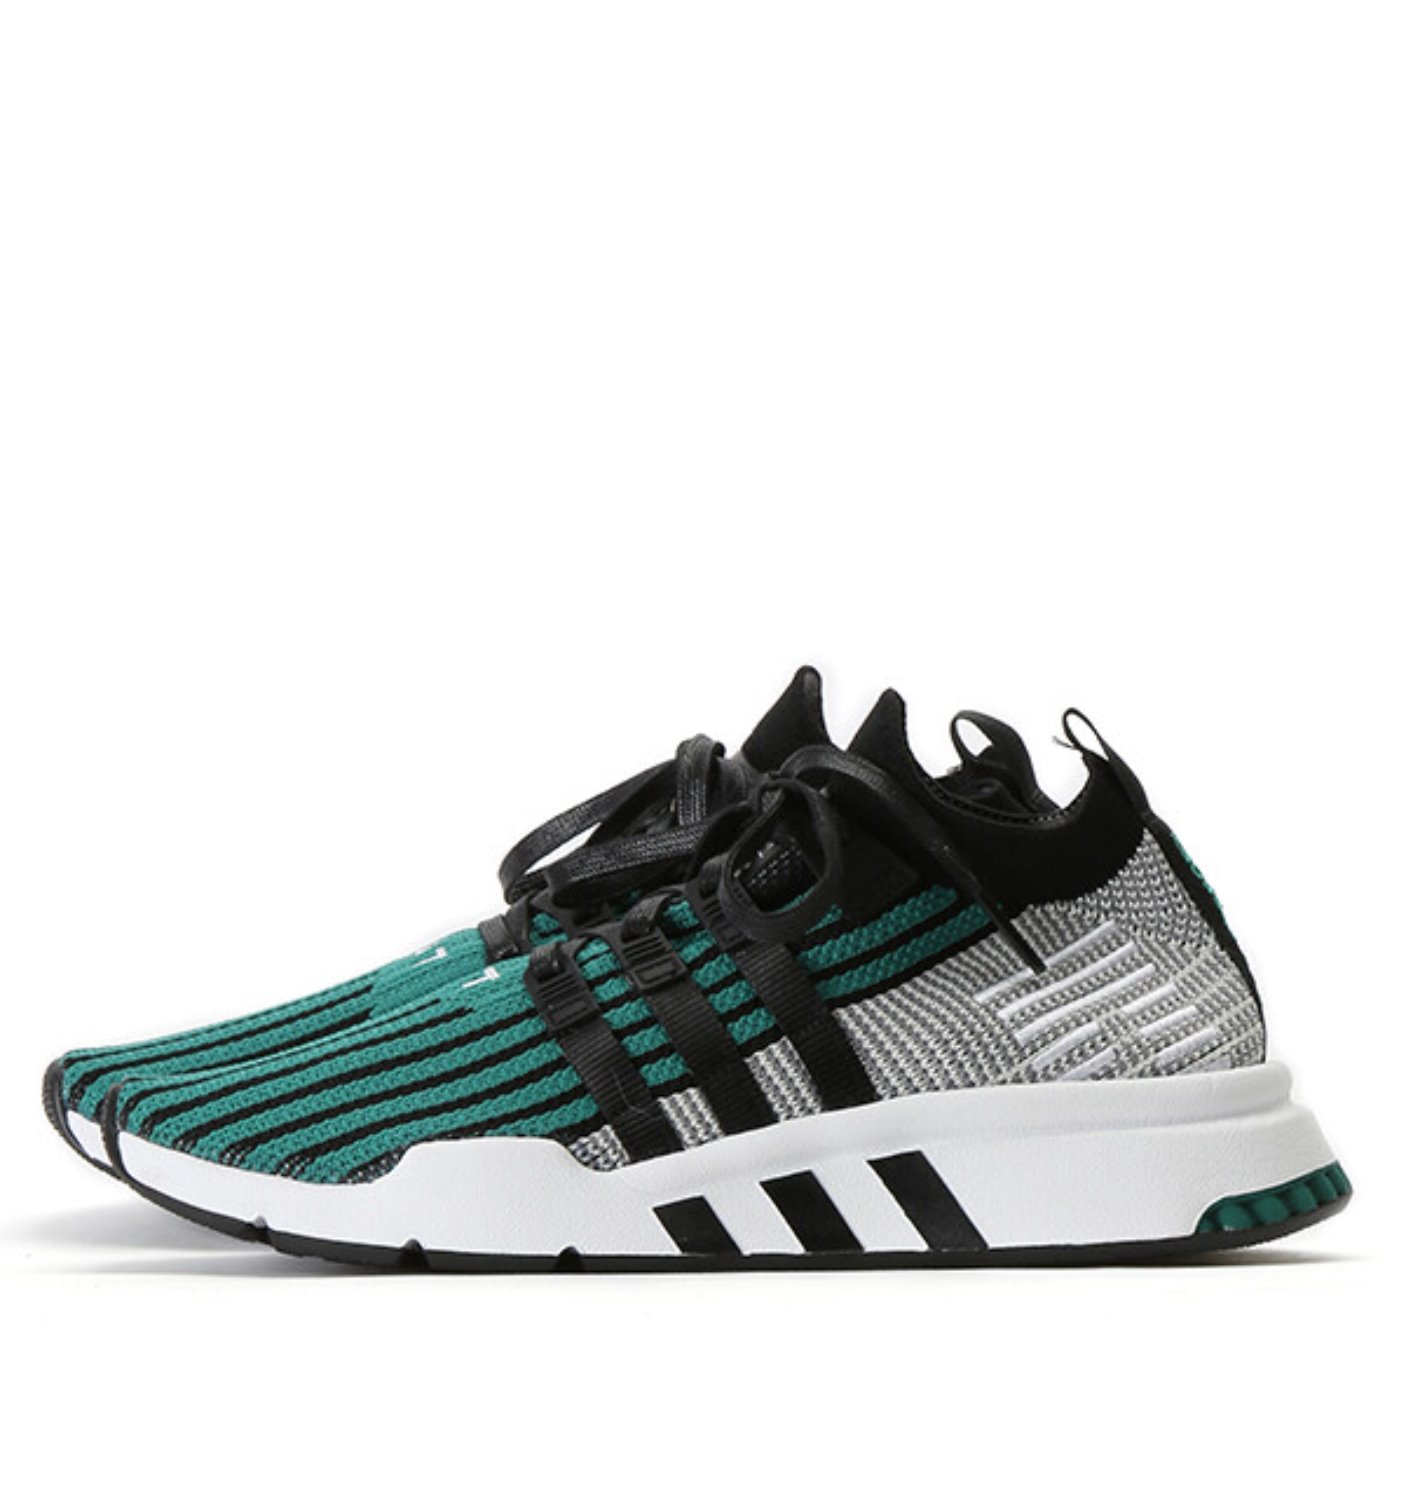 EQT SUPPORT MID ADV PK BLACK/GREEN (CQ2998)